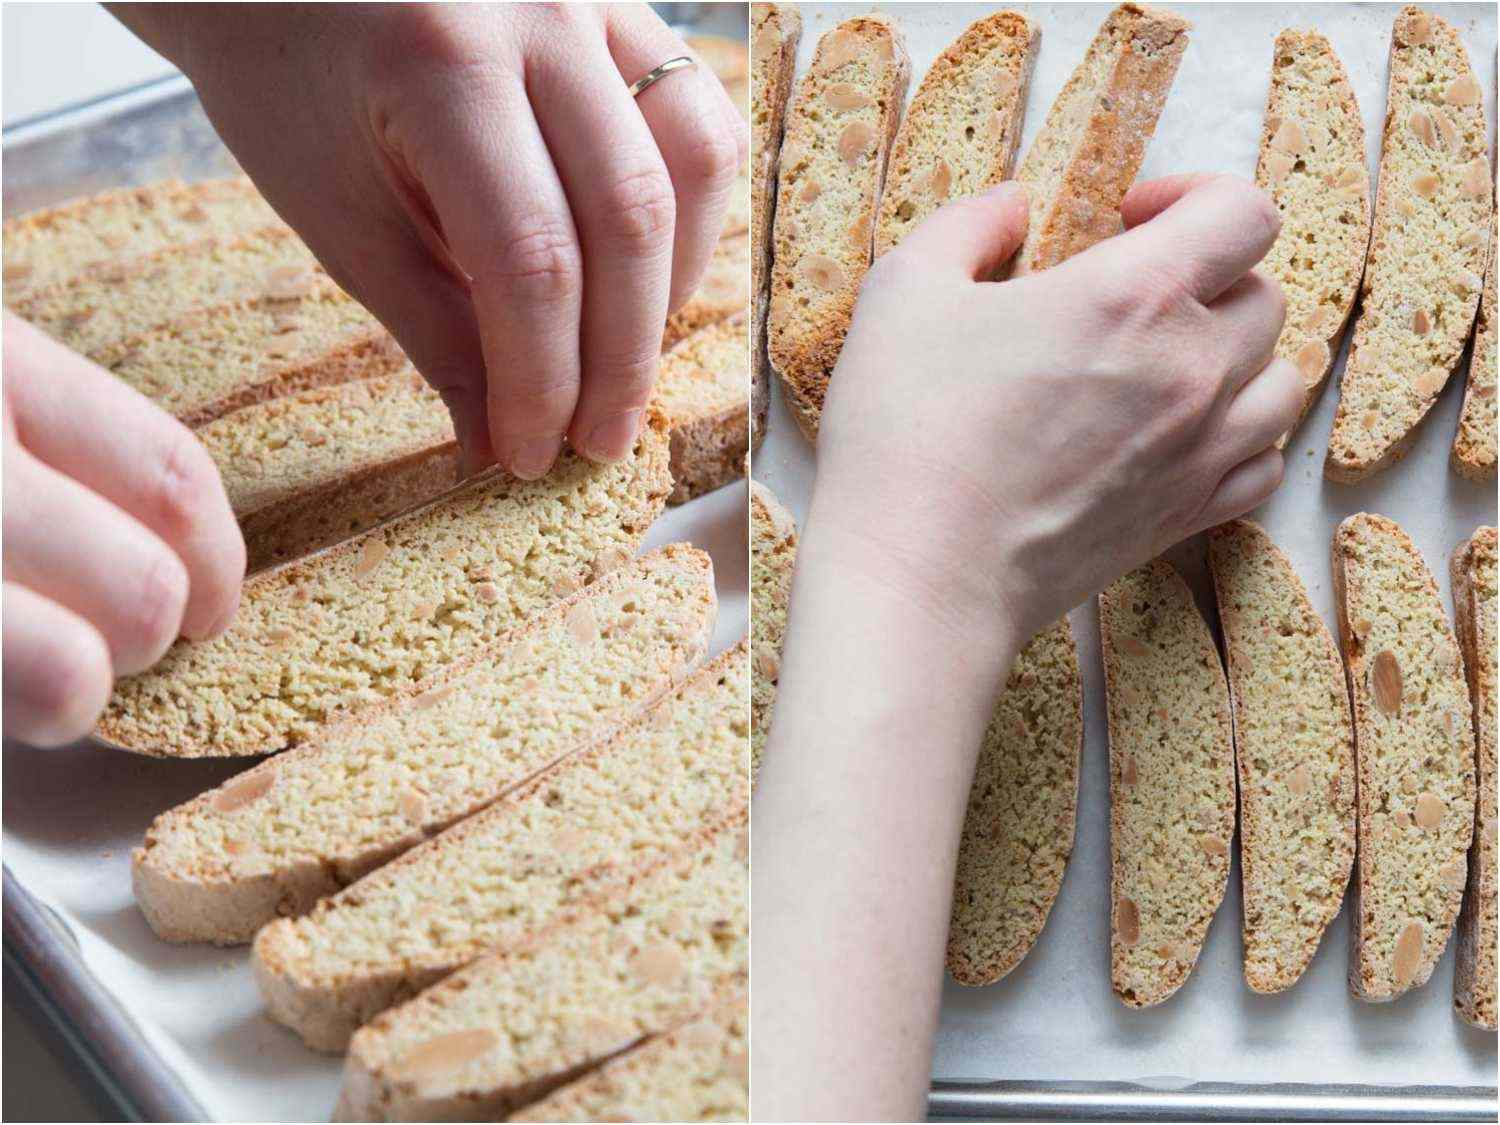 flipping the biscotti to bake the other side